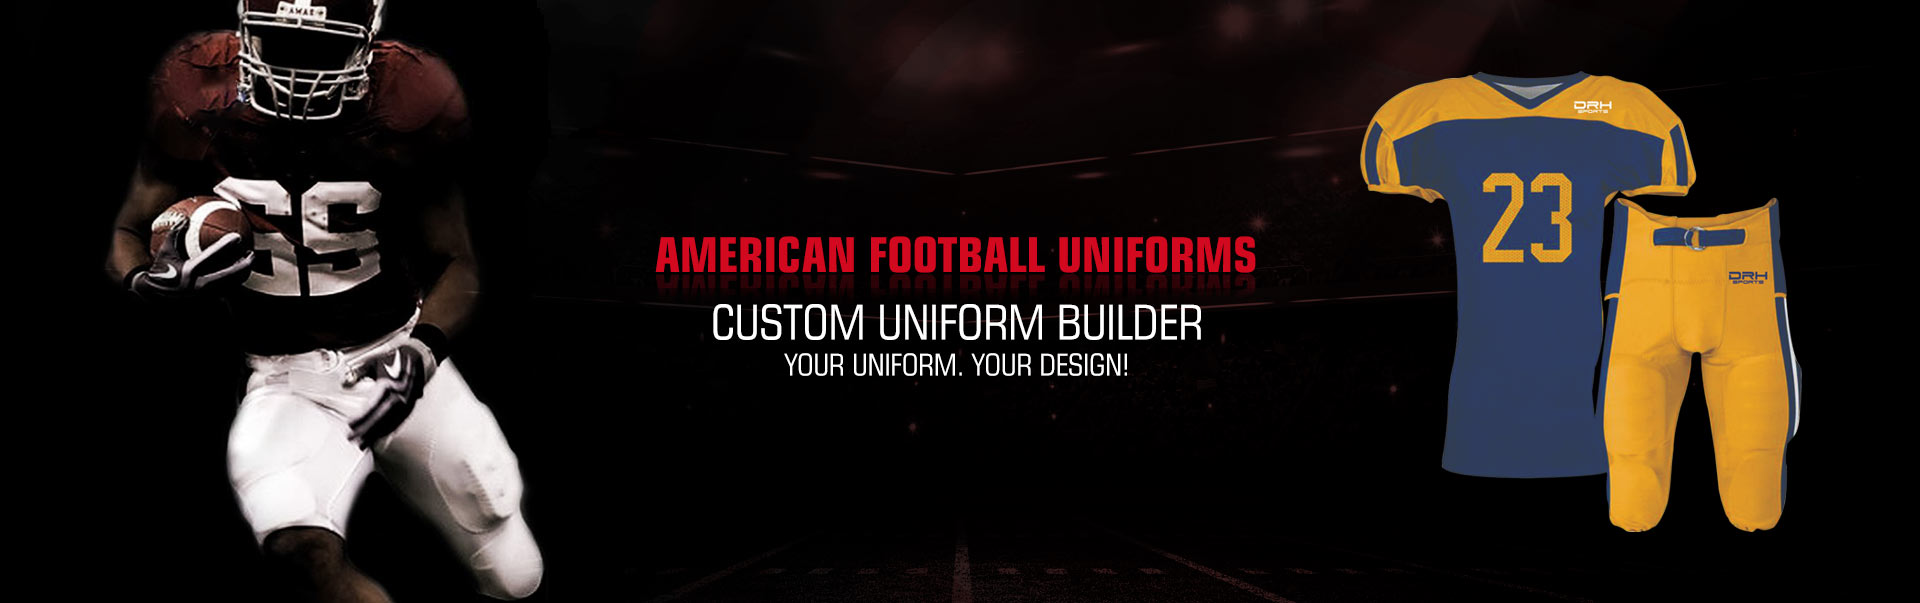 American Football Uniform Wholesaler, Suppliers in Bellevue